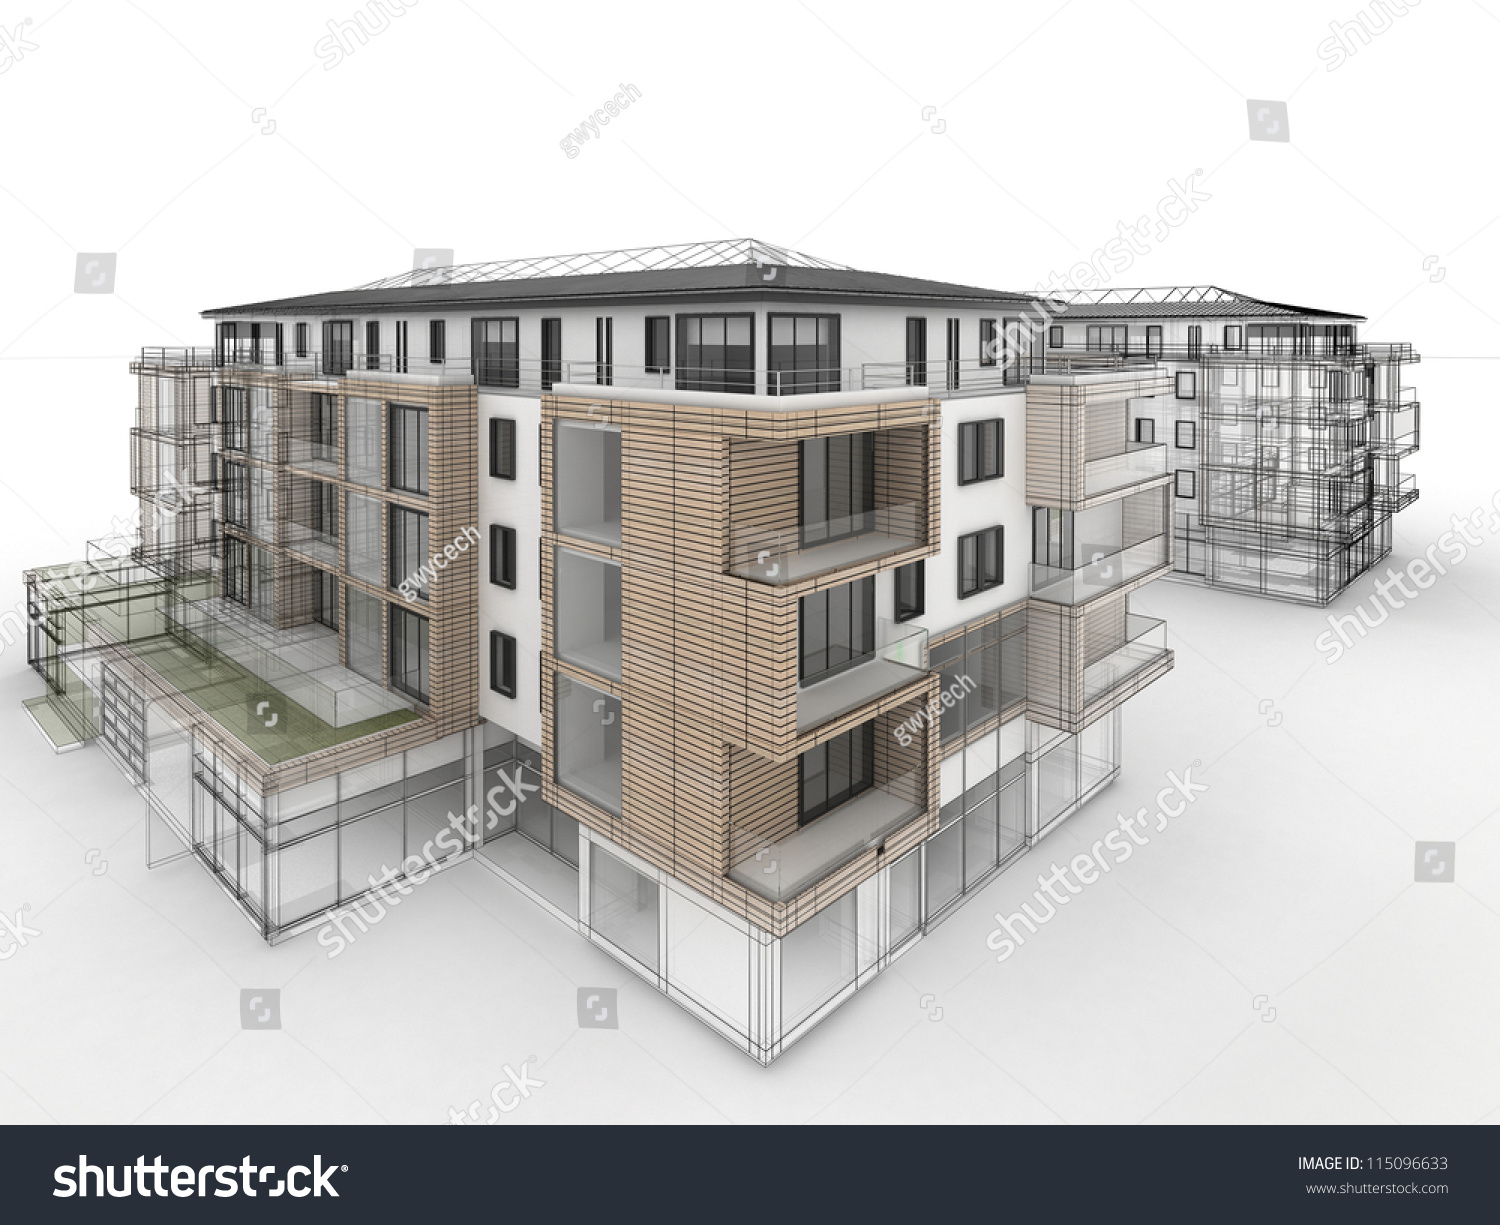 Apartment building design progress architecture for Apartment building drawing